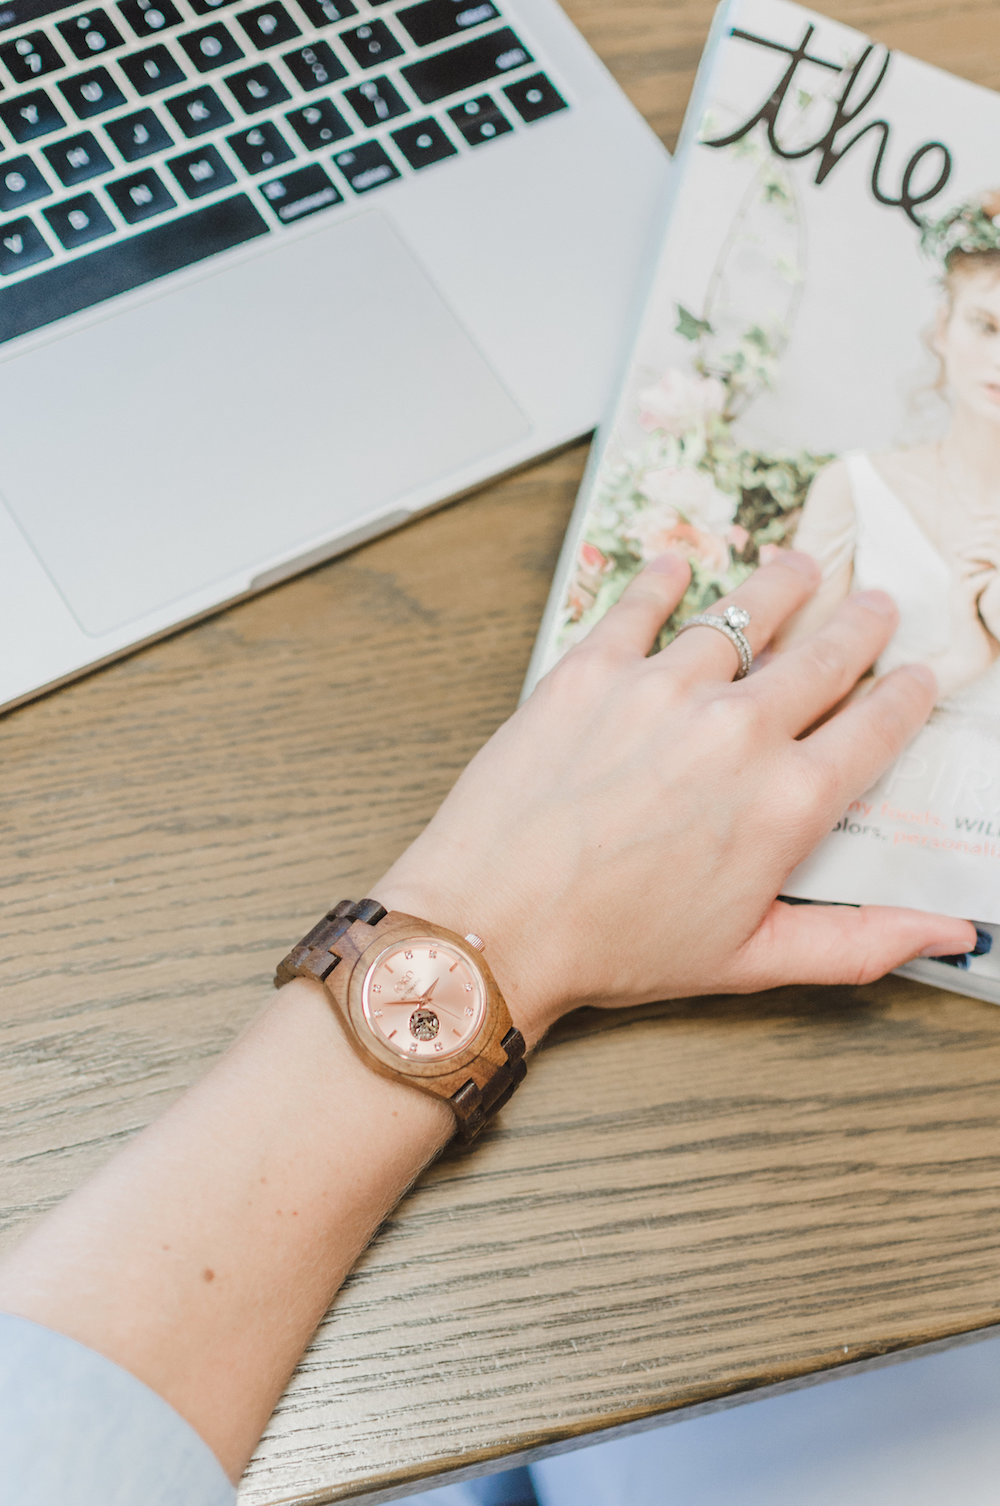 JORD Wood Watch Giveaway, Fall Fashion, JORD Wooden Watch, Fashion Giveaway, JORD Giveaway, Something New for I Do Giveaway, Women's Watch Giveaway, Women's Wood Watch